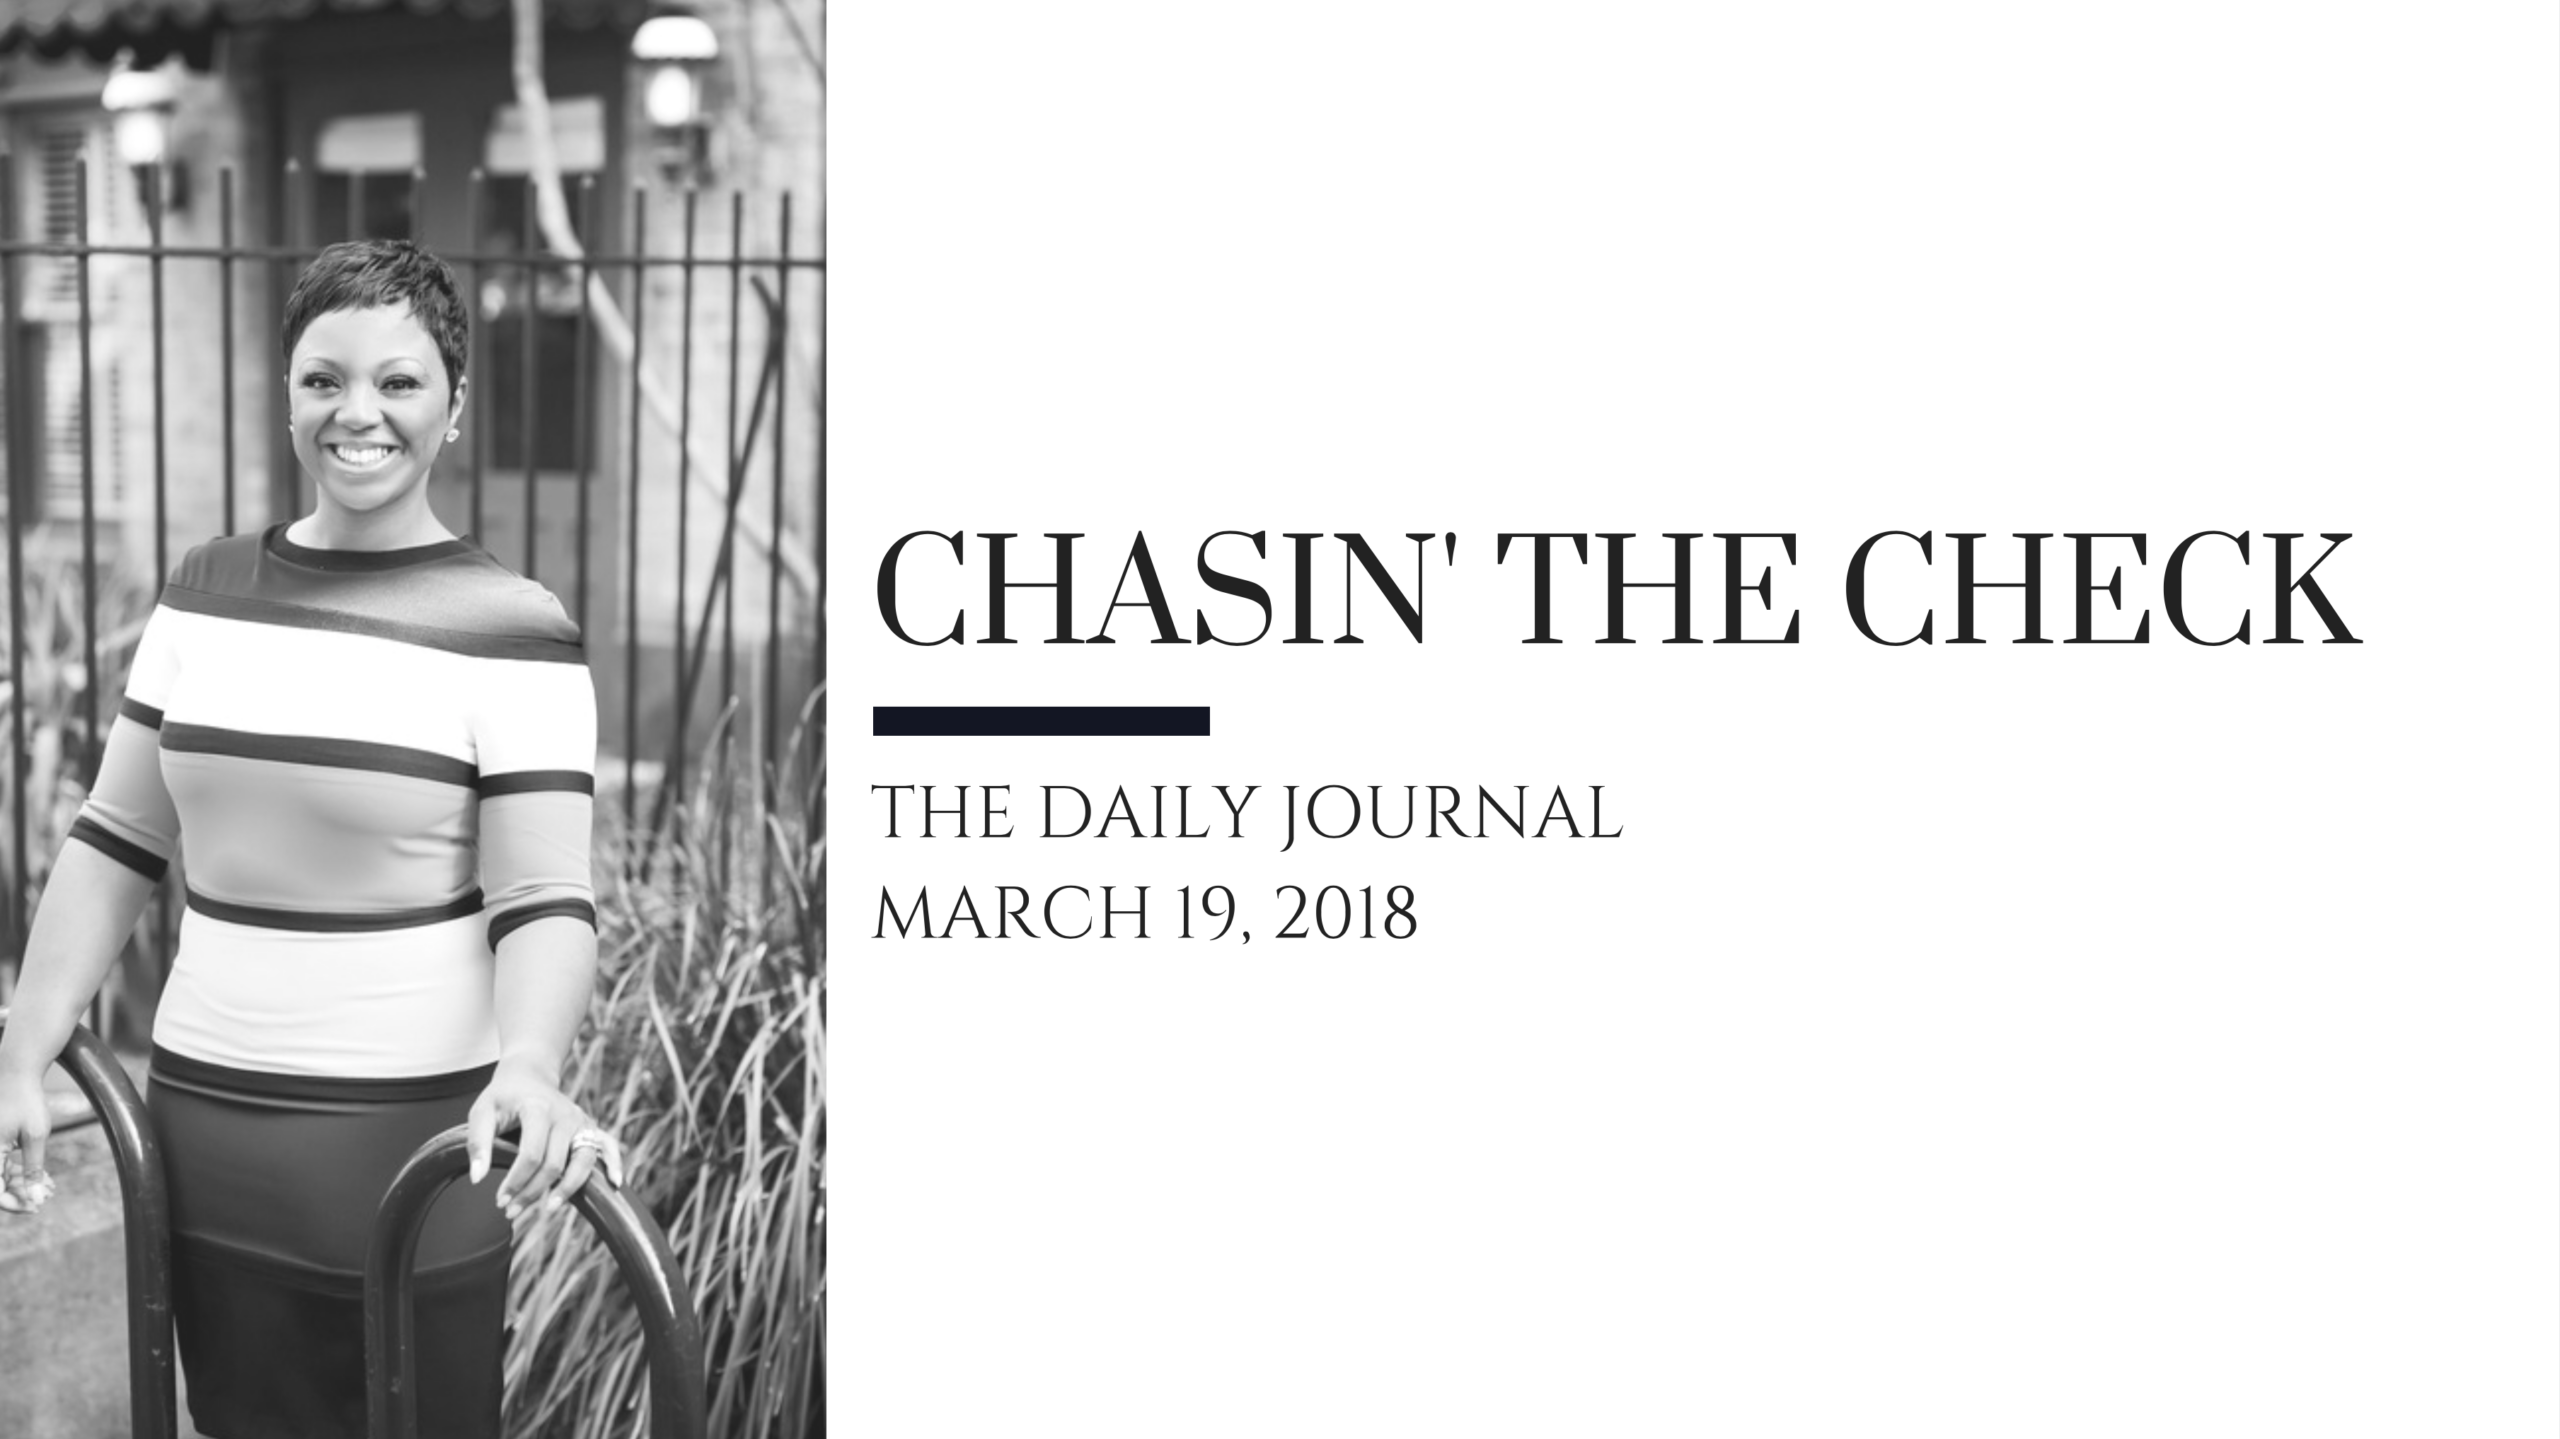 The Daily Journal: Chasin' The Check 1